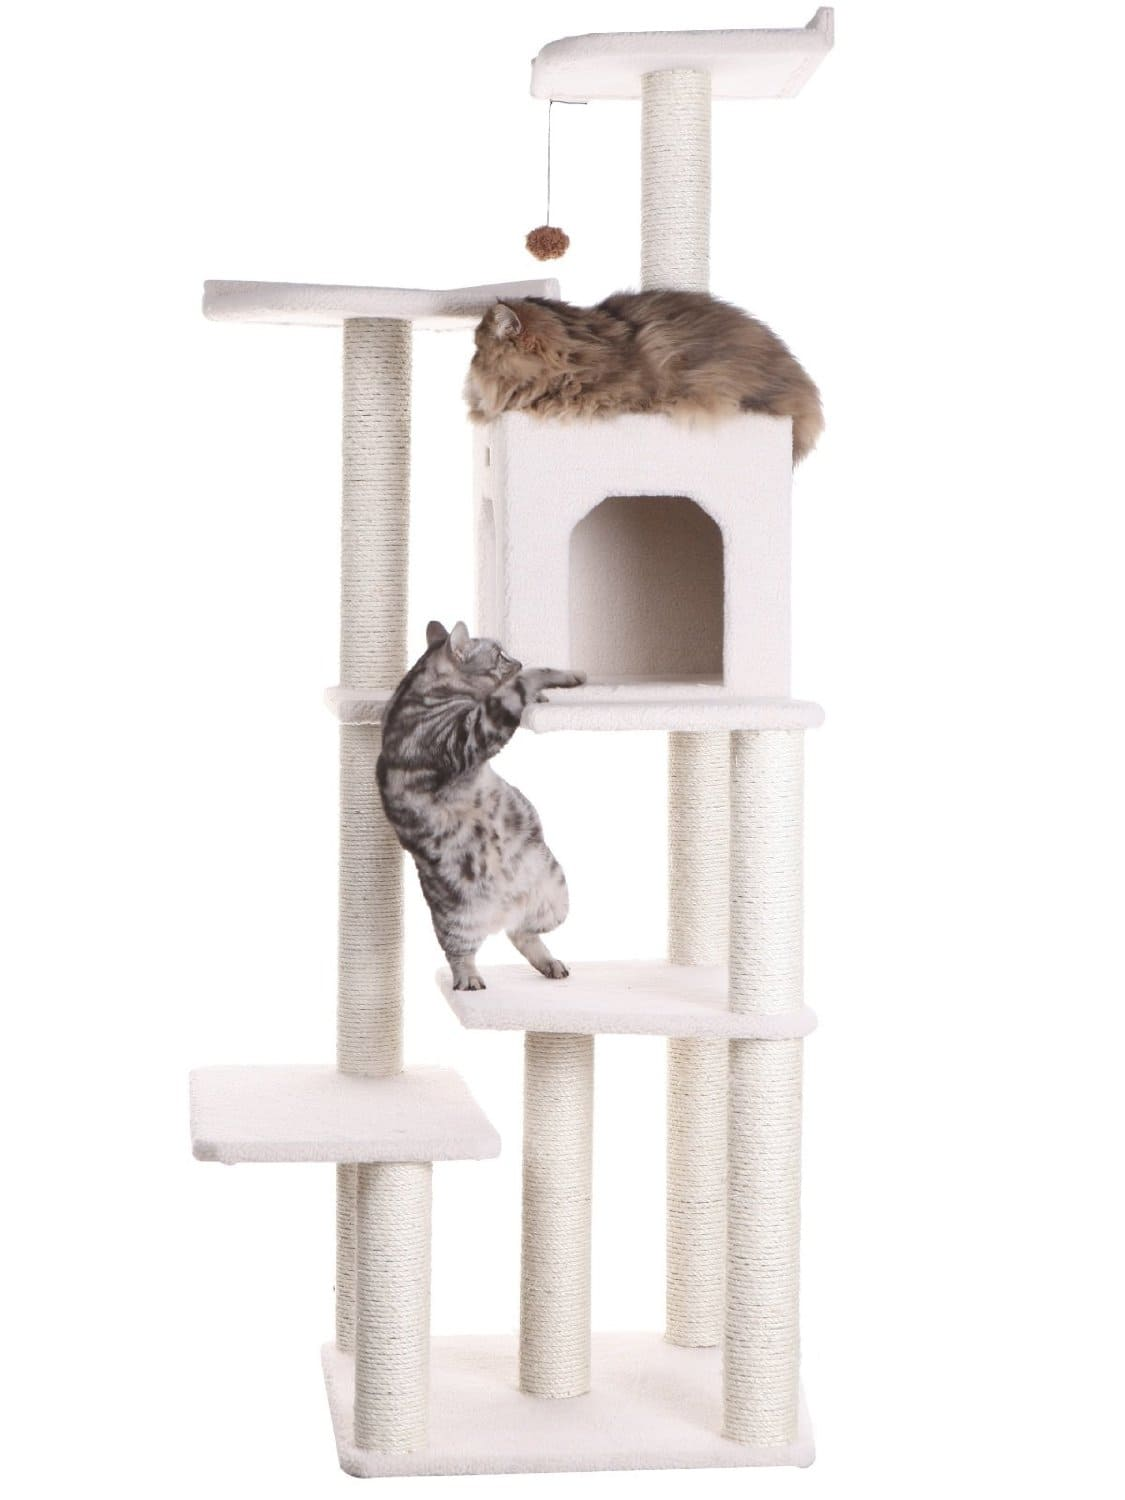 Armarkat Cat Tree Condo former front page Deal 64.99 now 44.51, and amex offer to save even more!